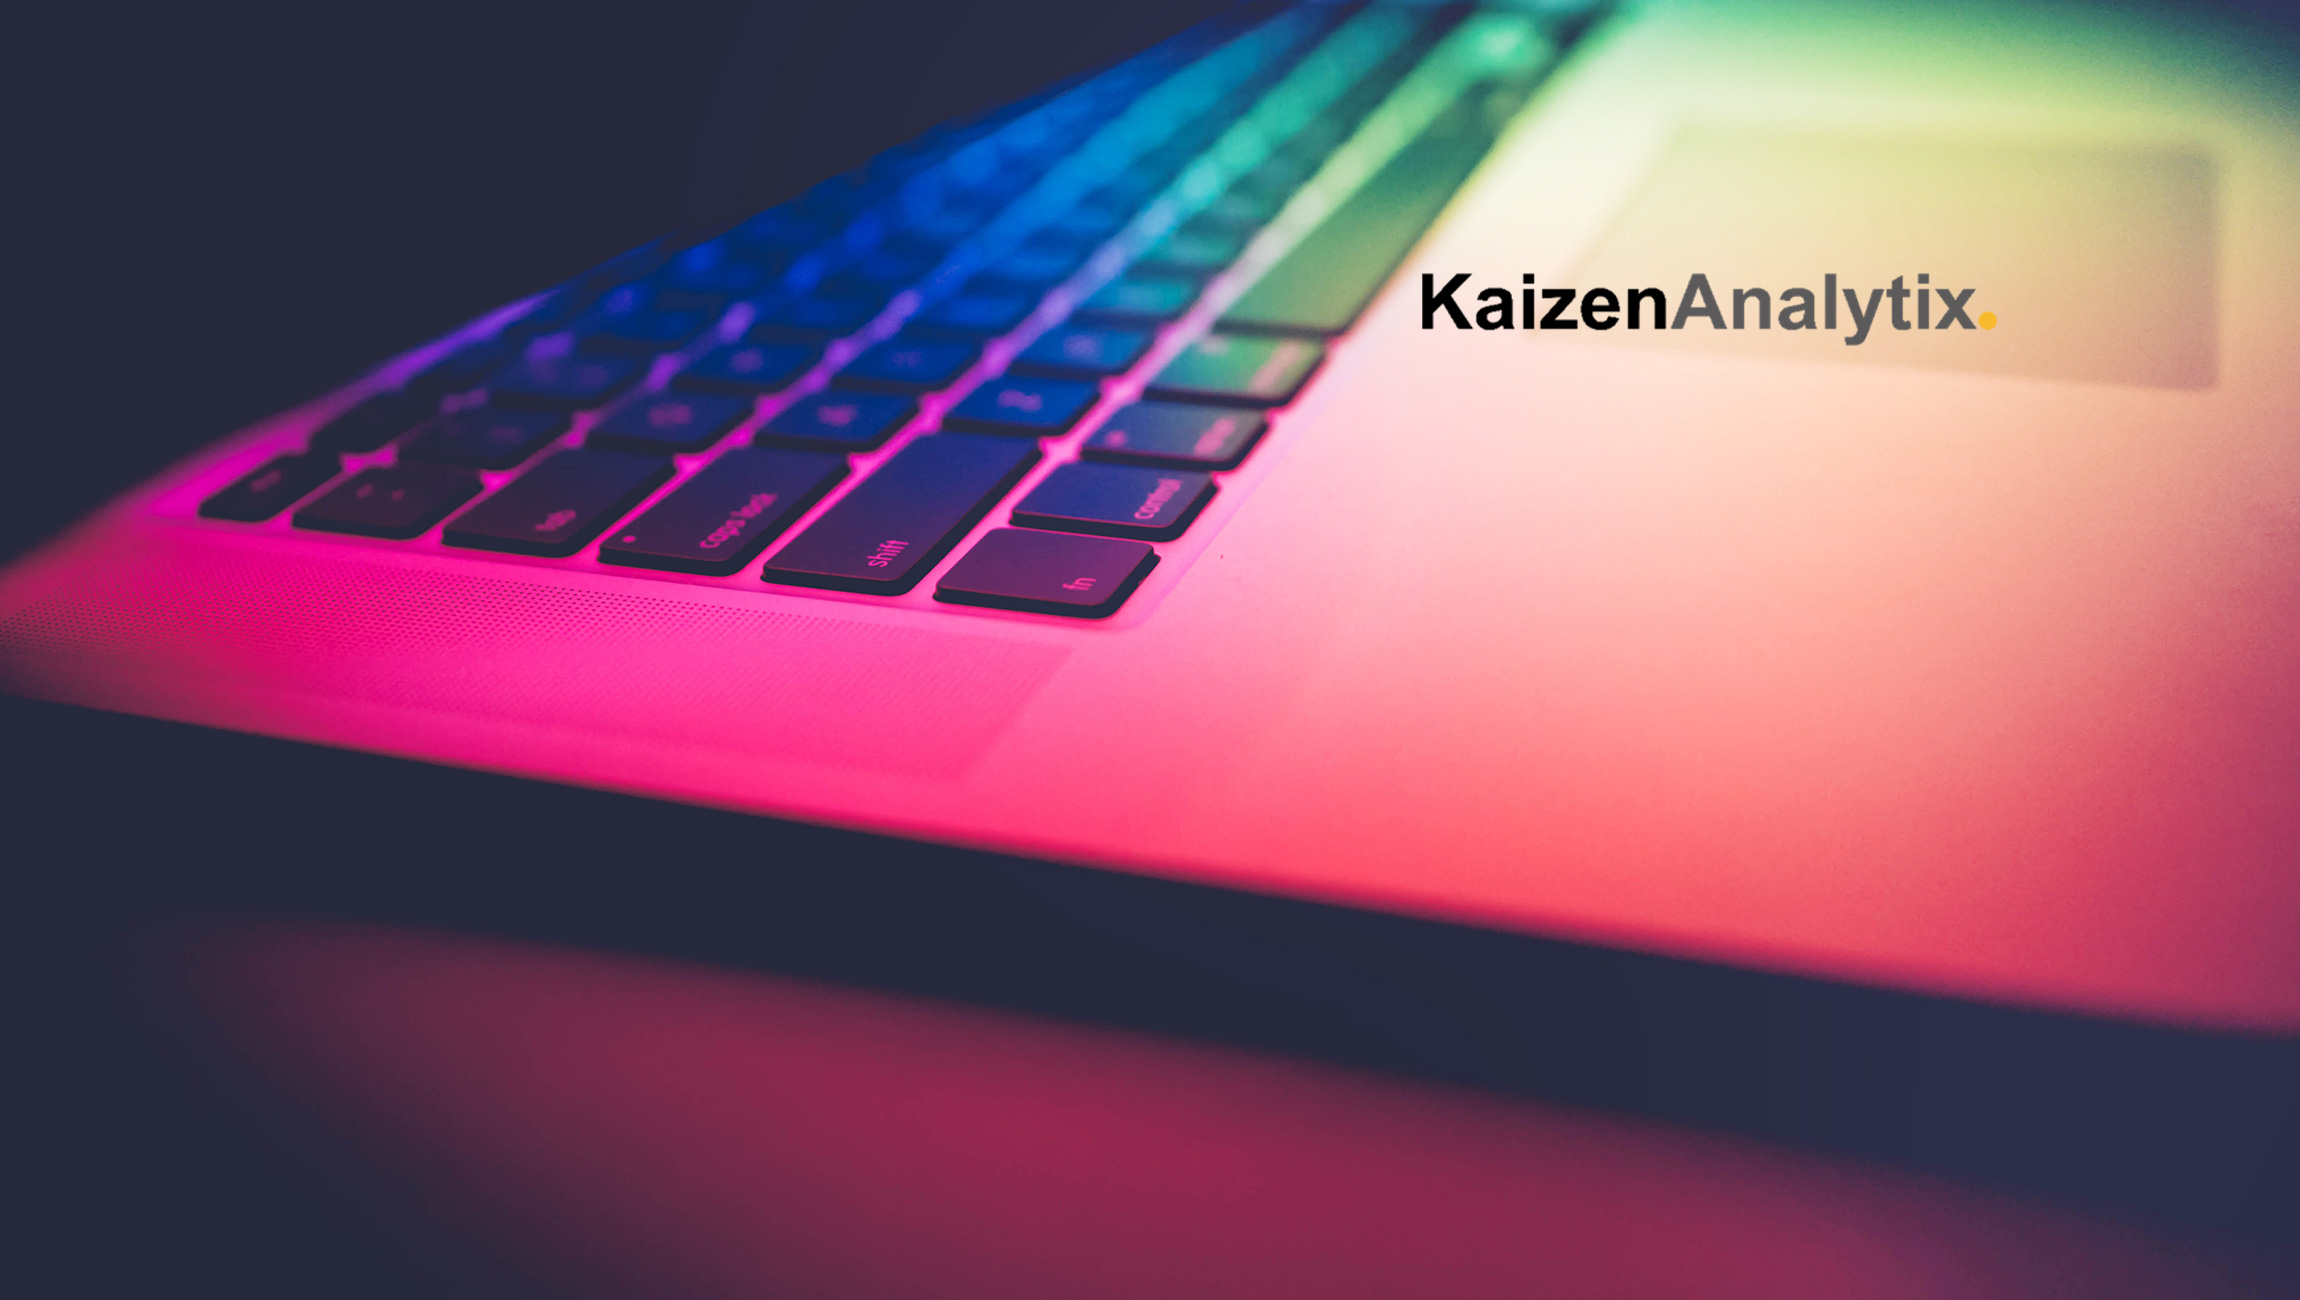 Kaizen Analytix Launches Additional KaizenDataLabs Data, Offering Customers Next-Level Analytical Capabilities